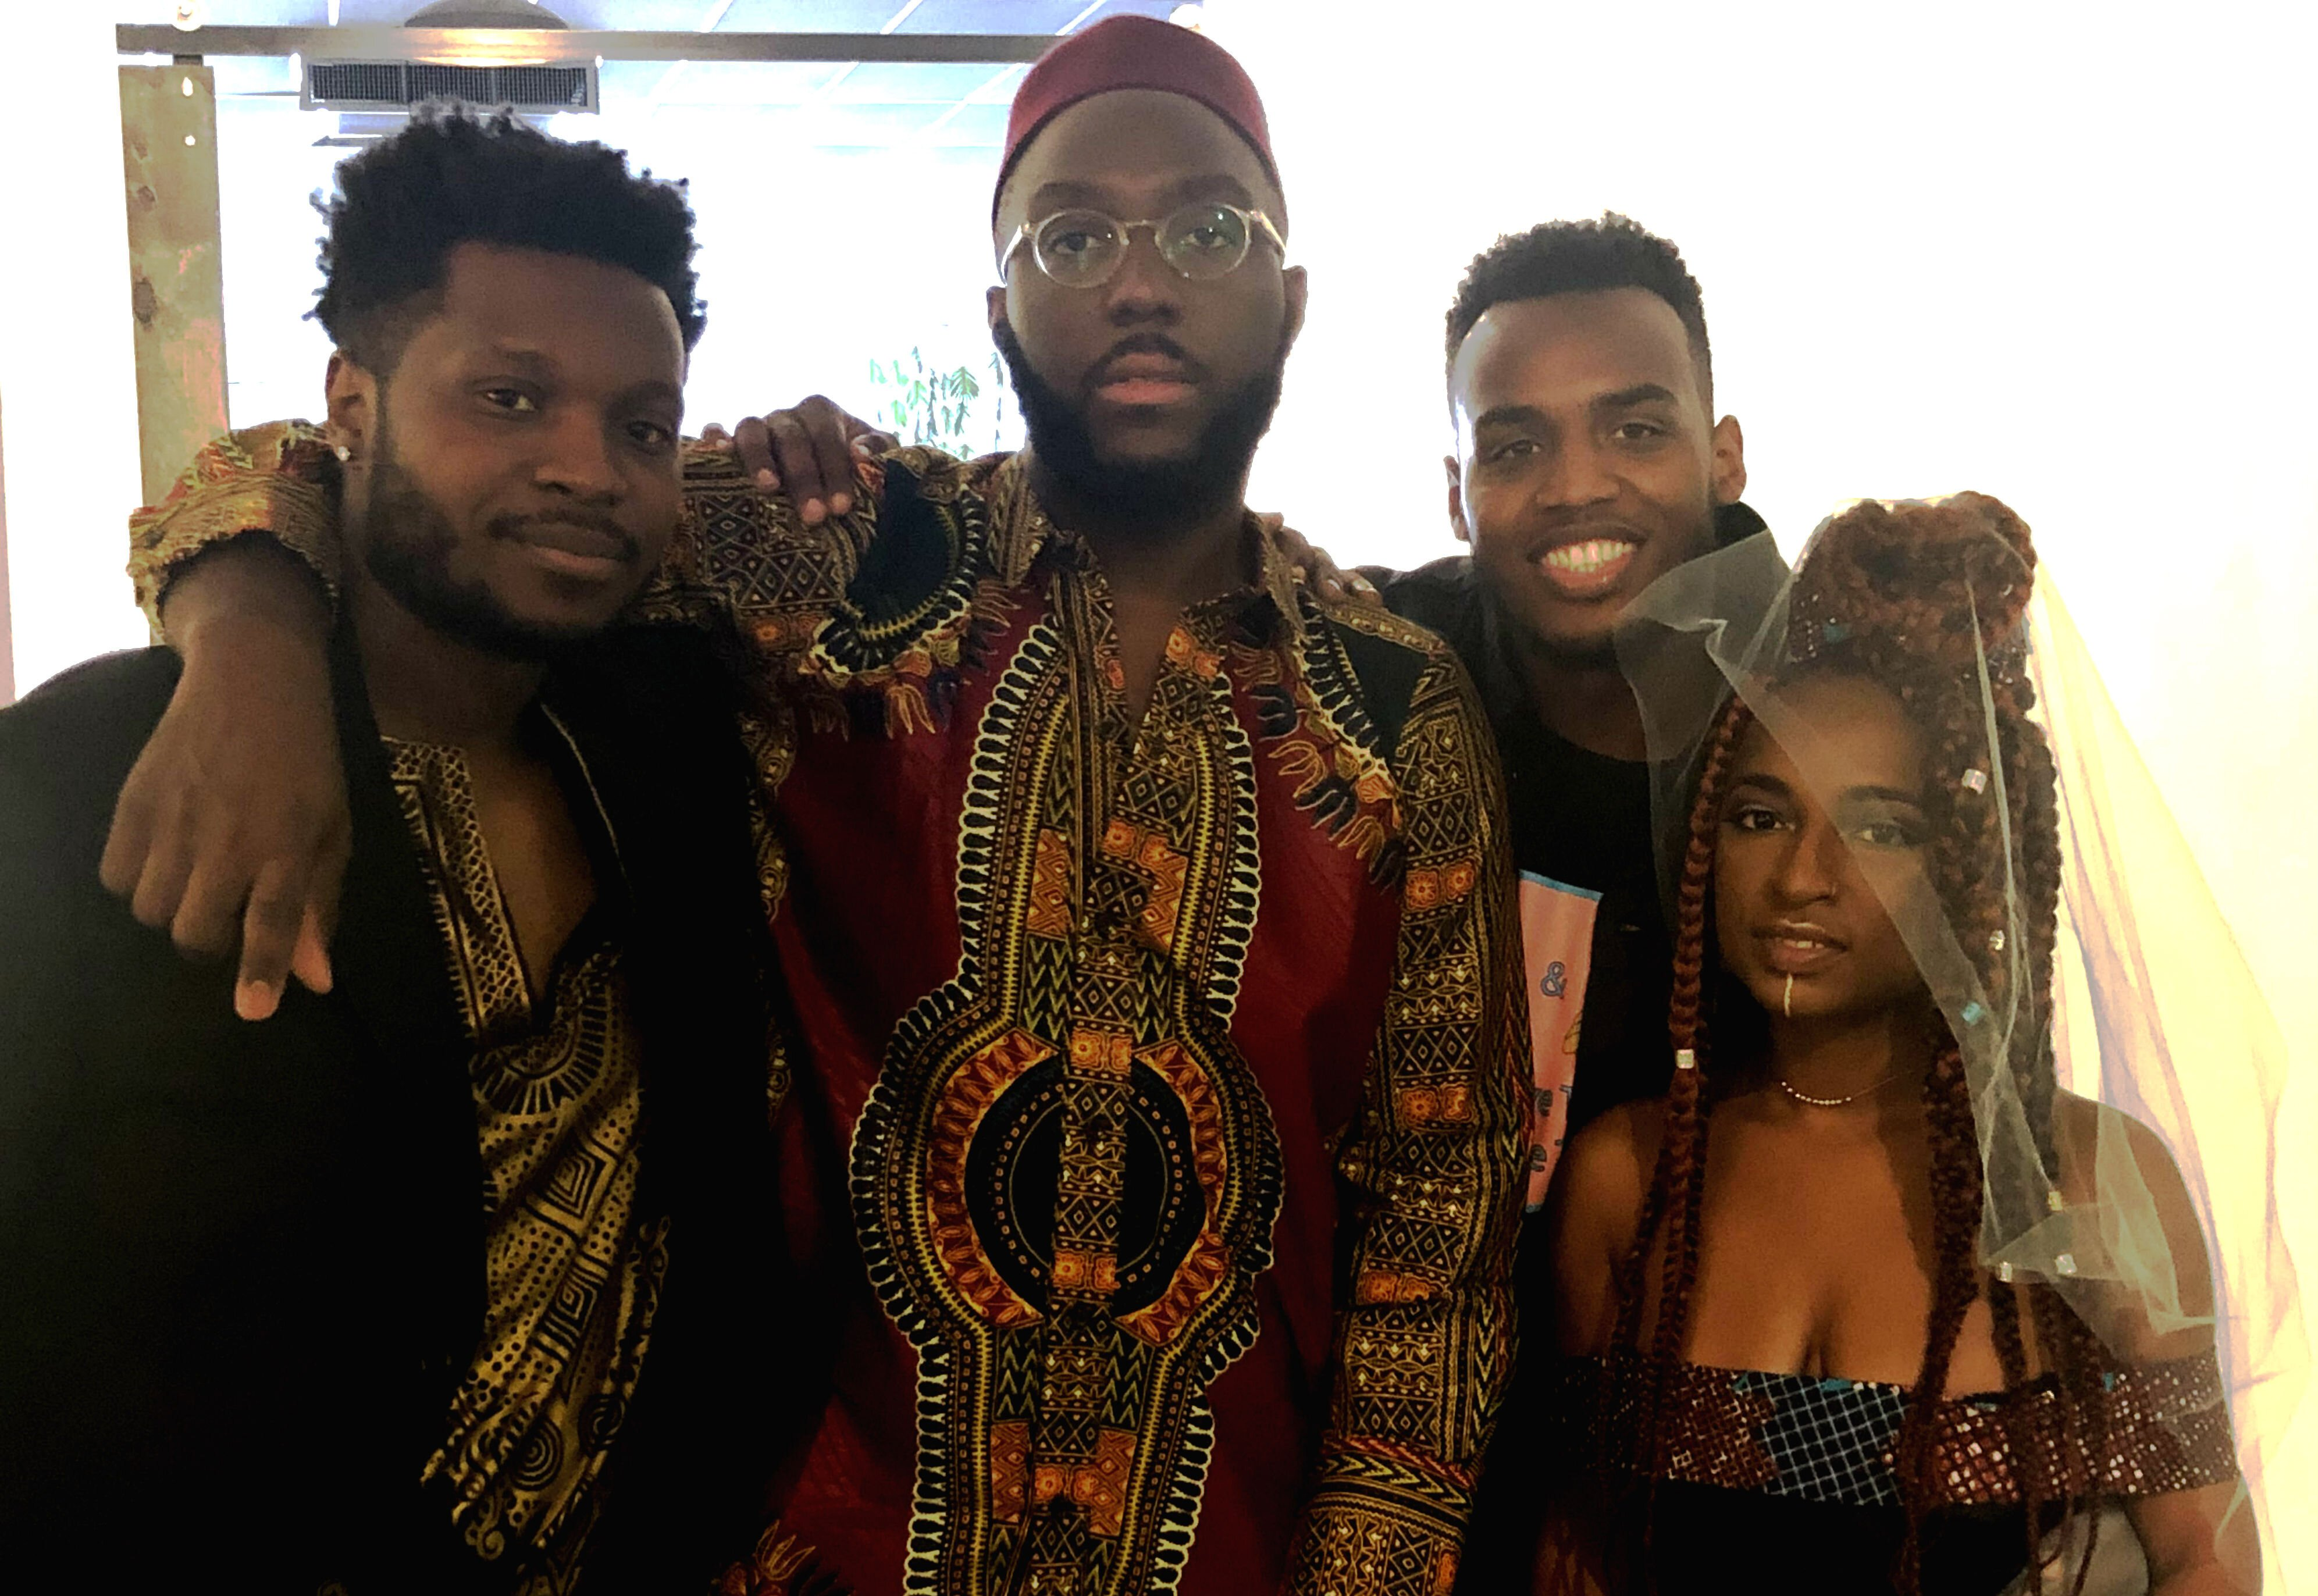 (L to R) Kenneth Alexander, Jared Boyd, Kid Maestro and Amber George attend The CLTV's Juneteenth gala. (Erica Horton)